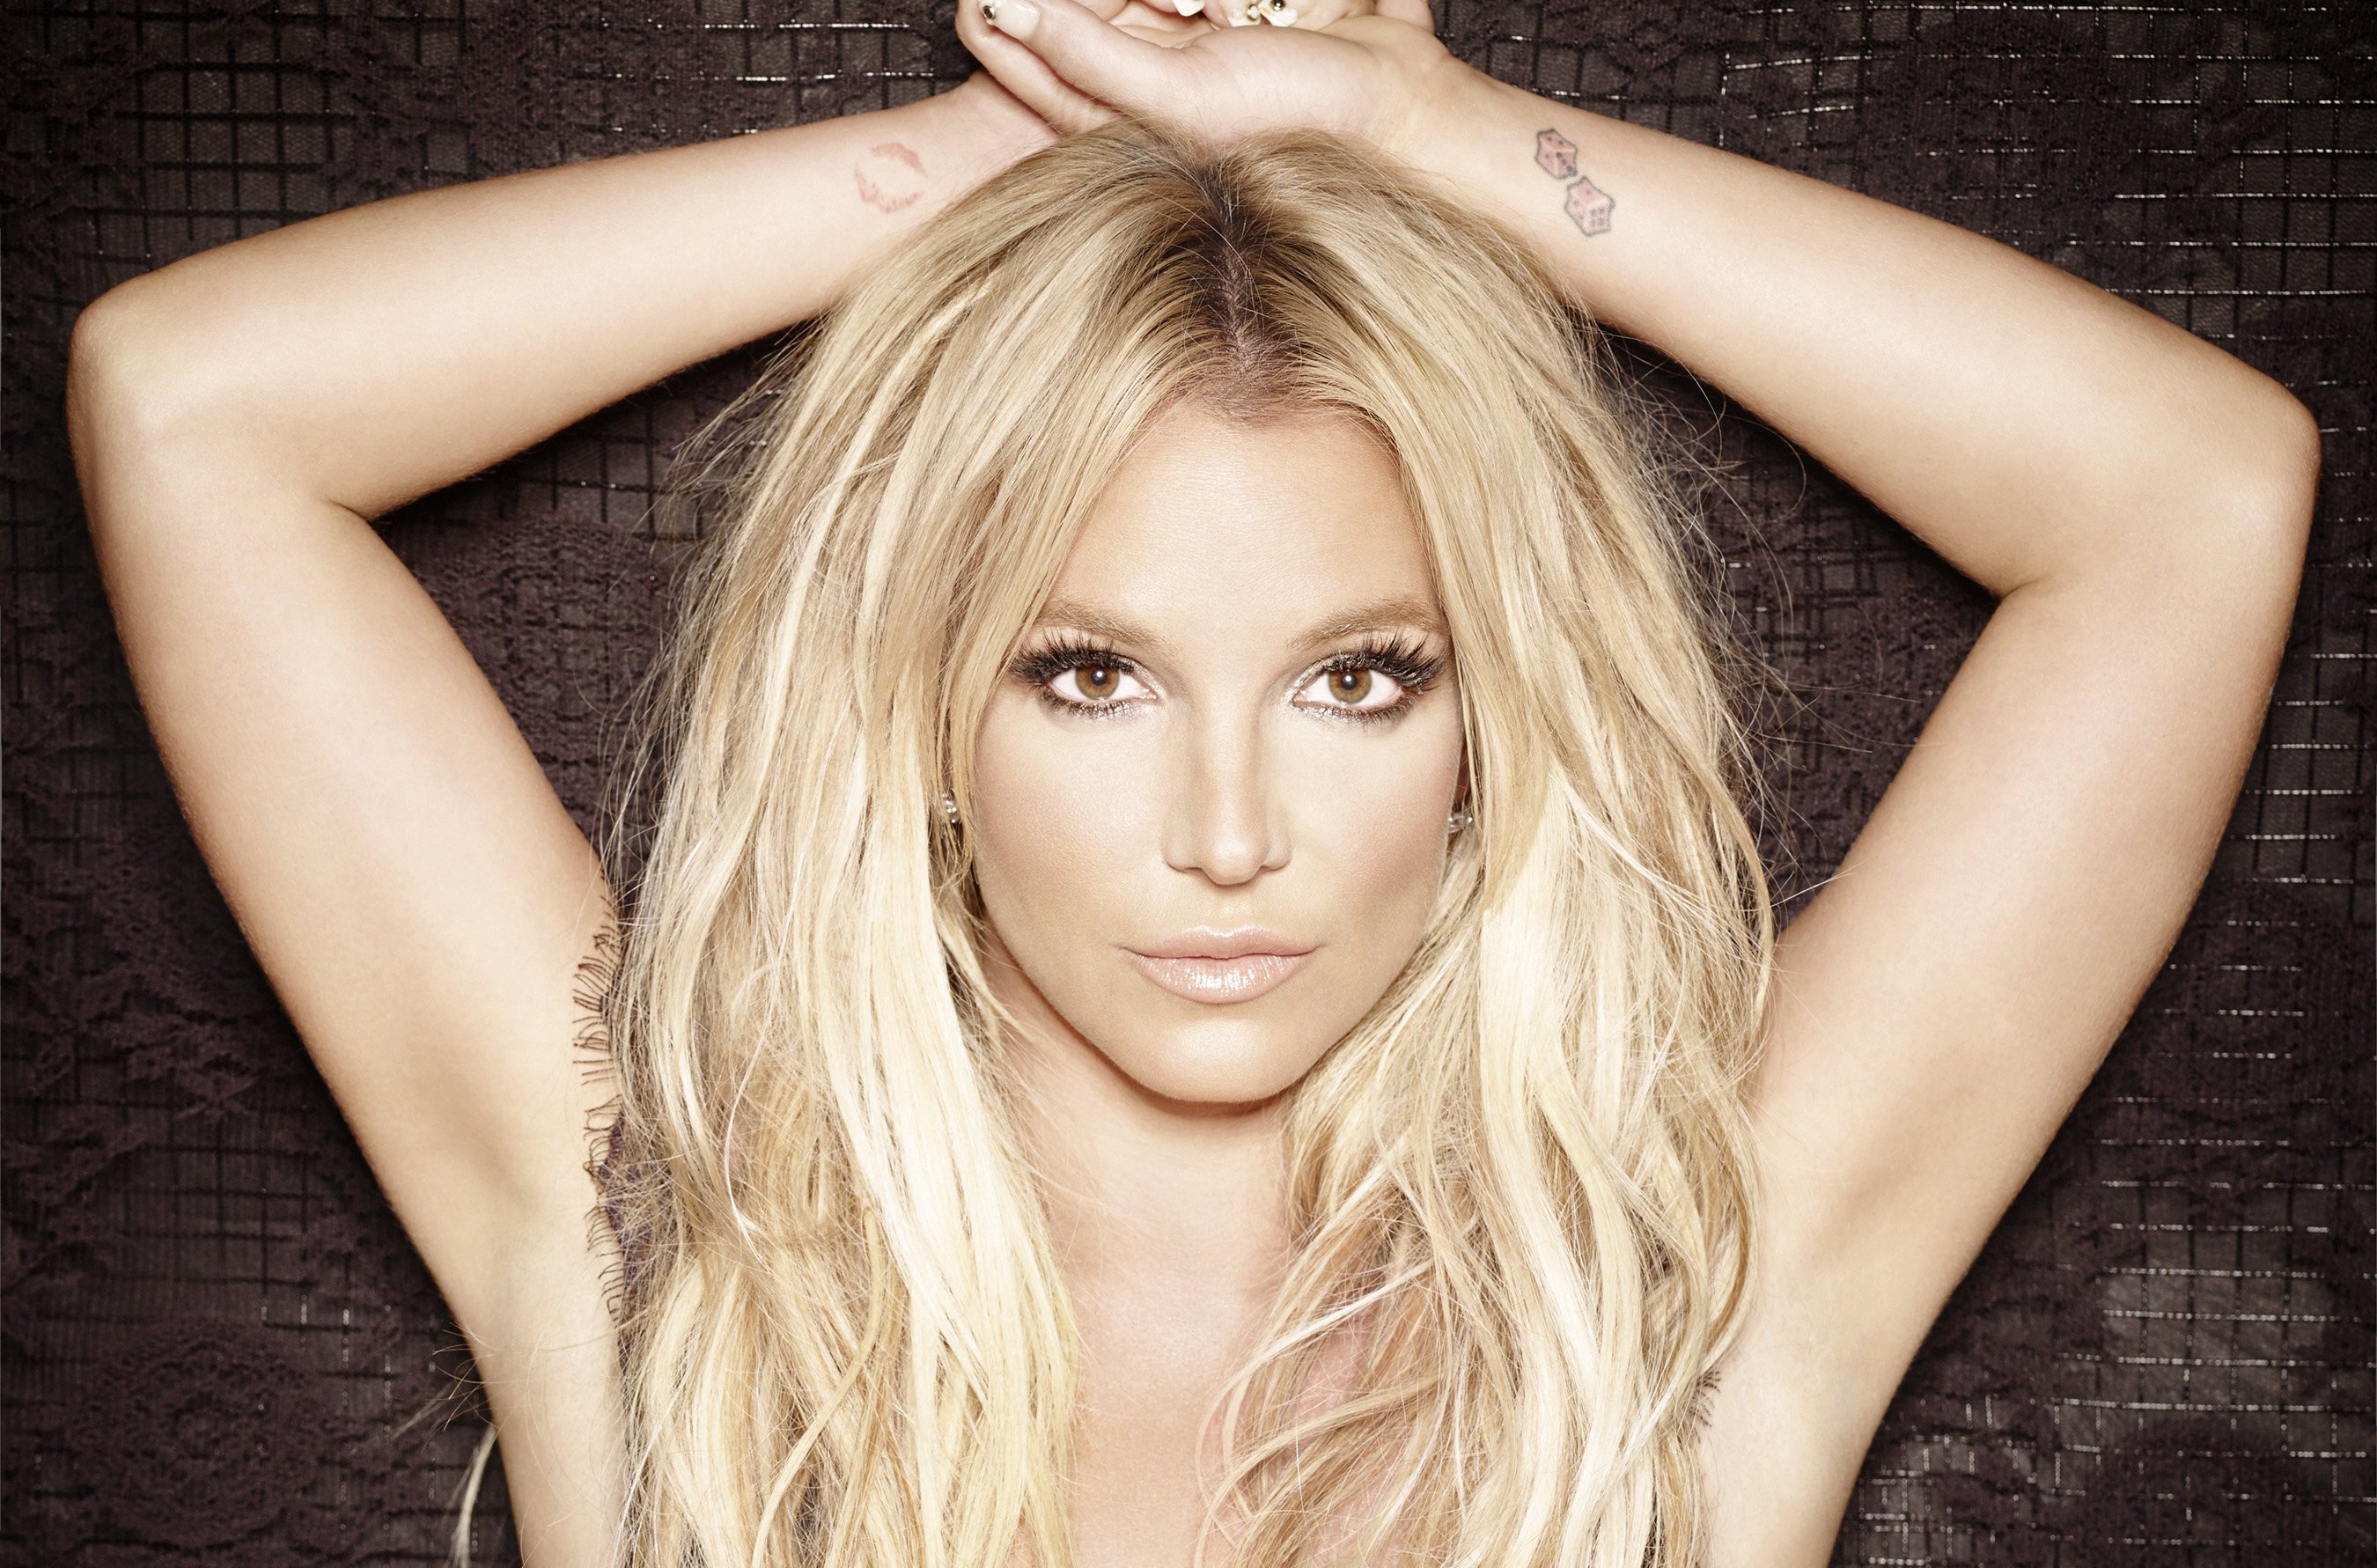 A Broadway musical based on the pop hits of Britney Spears will debut in Chicago this fall